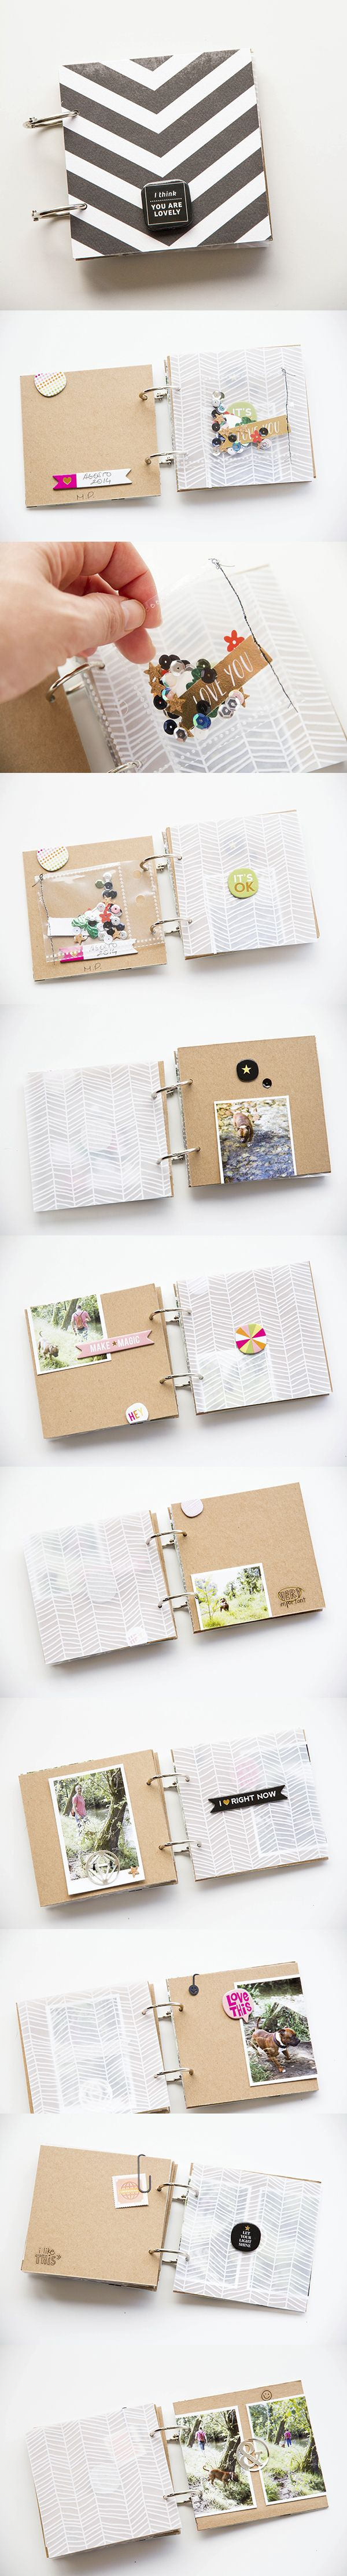 Mini scrapbook albums are a great way to build a page around a single photo!  Use chipboard as the base of each page and adhere your cardstock onto it. Always use a thin layer of liquid glue so your paper does not bubble - we love Mod Podge!  Find chipboa